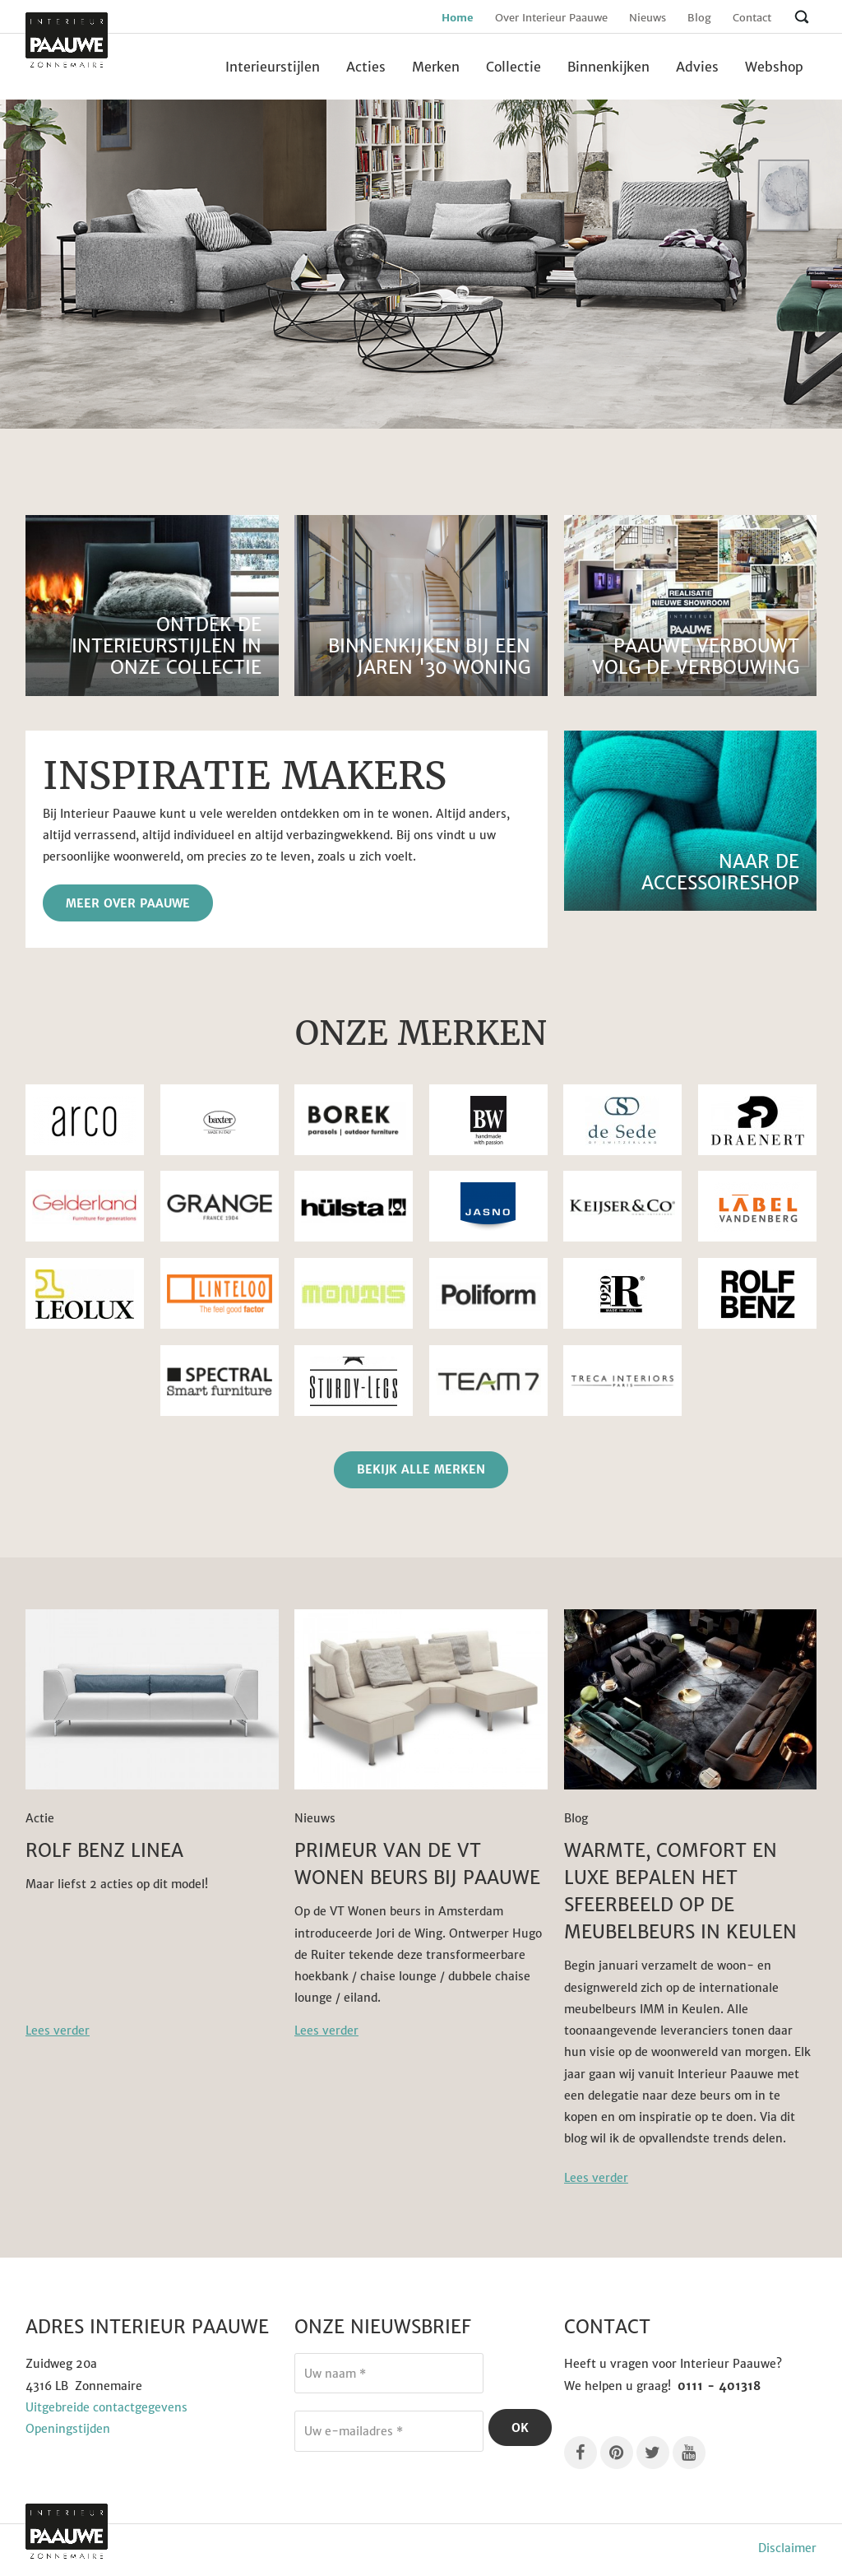 interieur paauwe zonnemaire competitors revenue and employees owler company profile